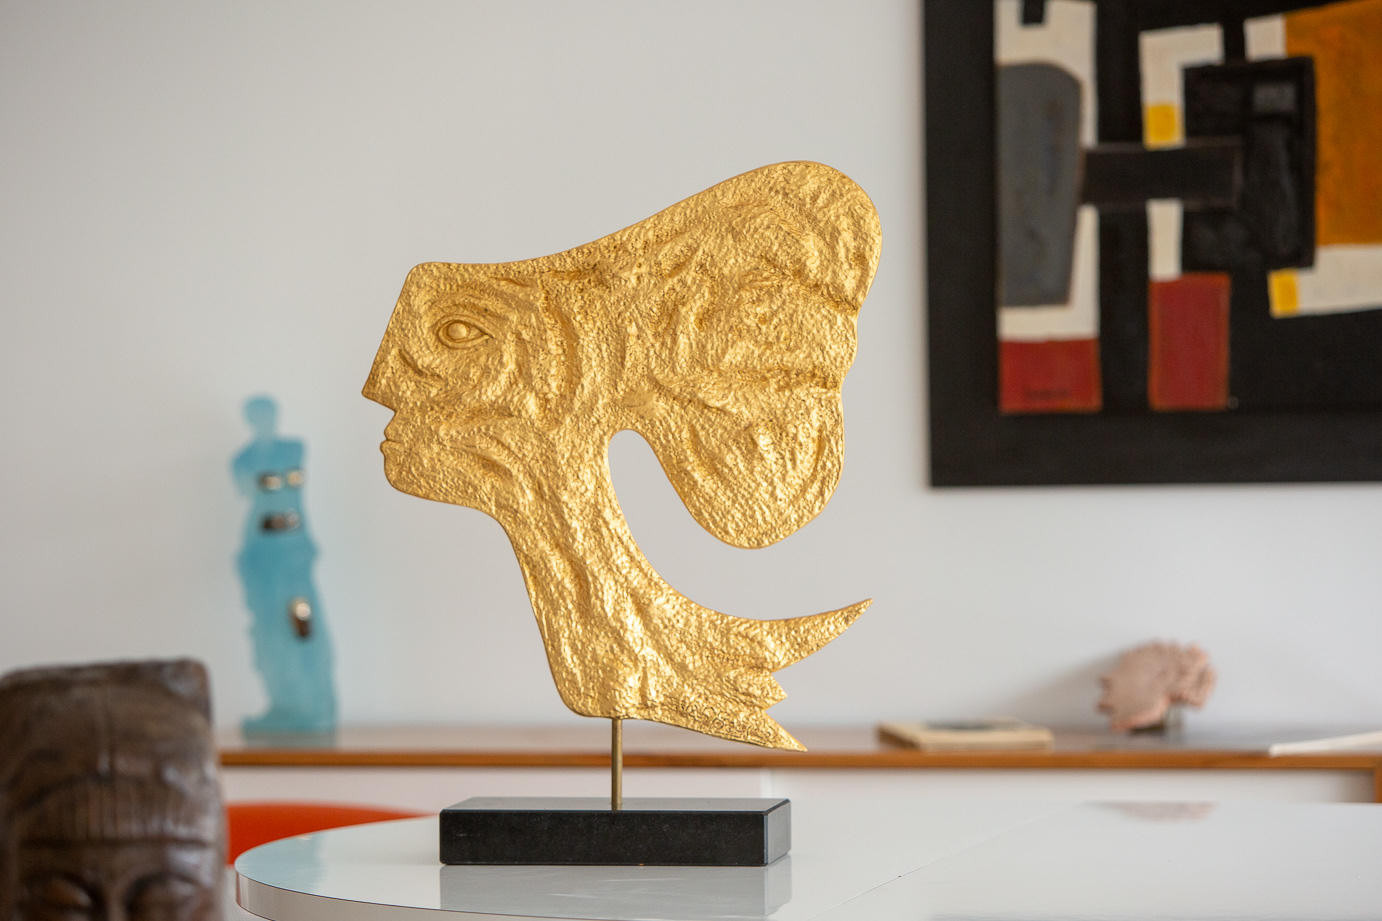 Georges Braque (1882-1963)  - Atalante, sculpture coated with gold